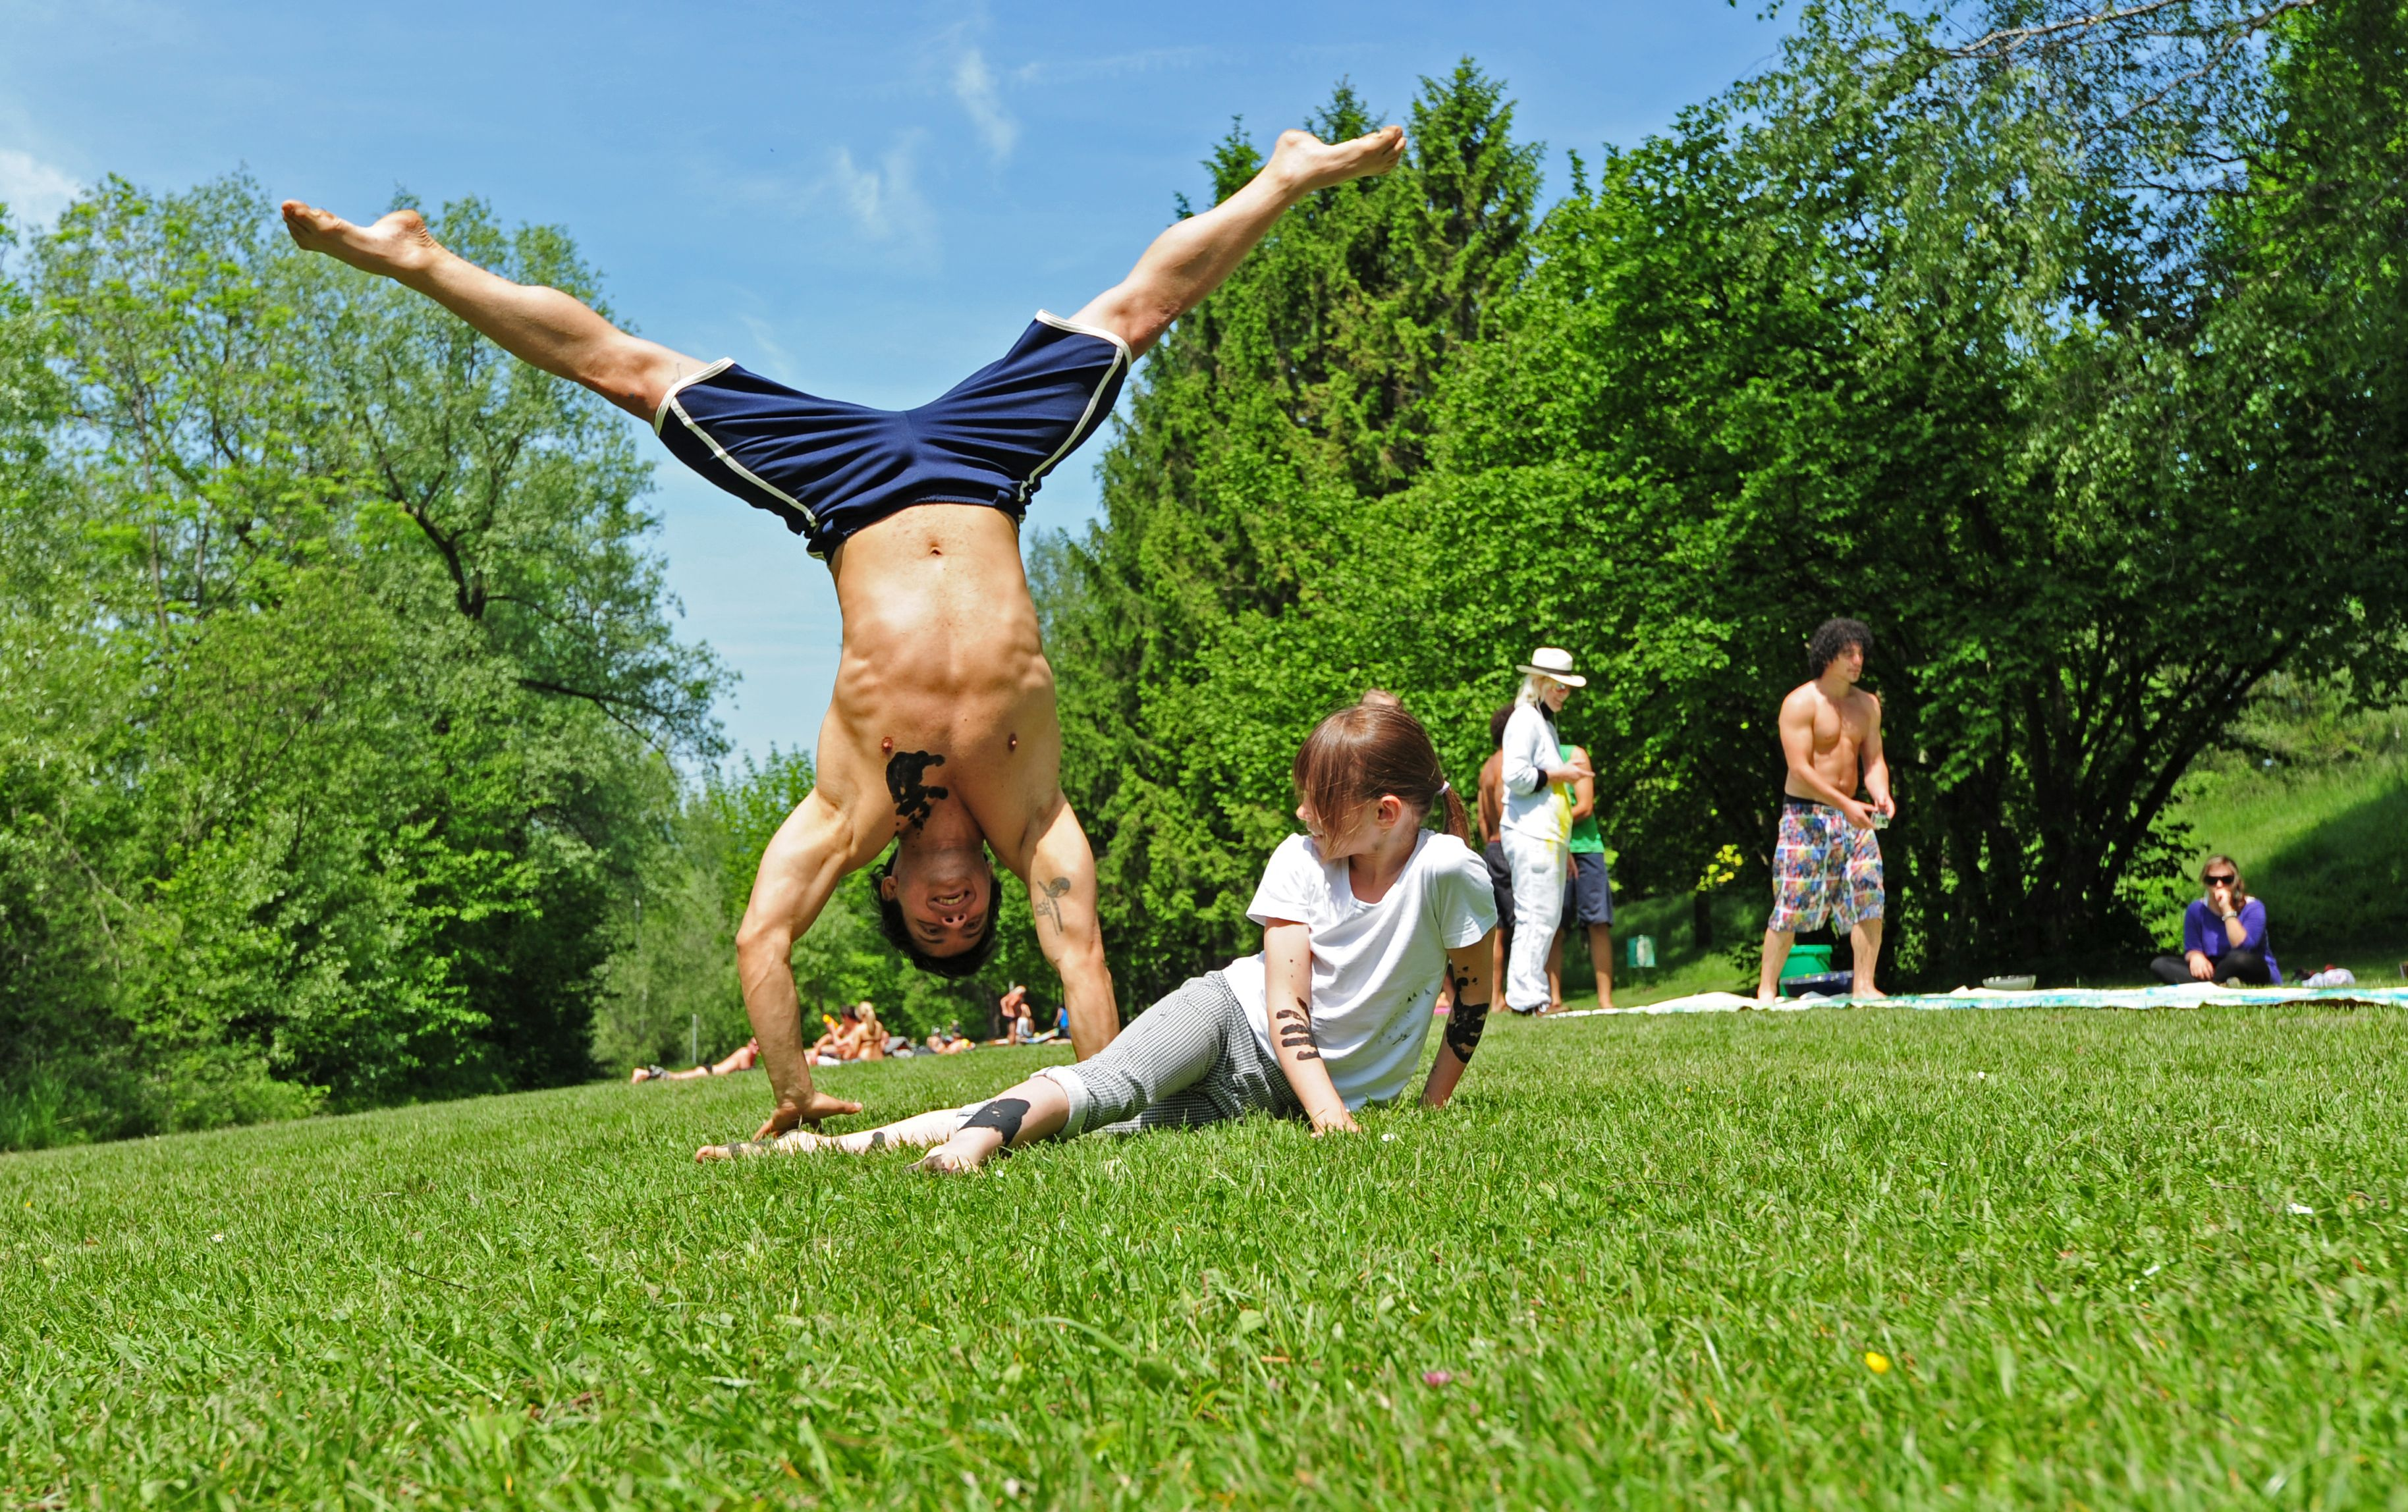 #capoeira #game #idealcapoeira #switzerland #handstand #lifestyle #moves  www.idealcapoeira.com